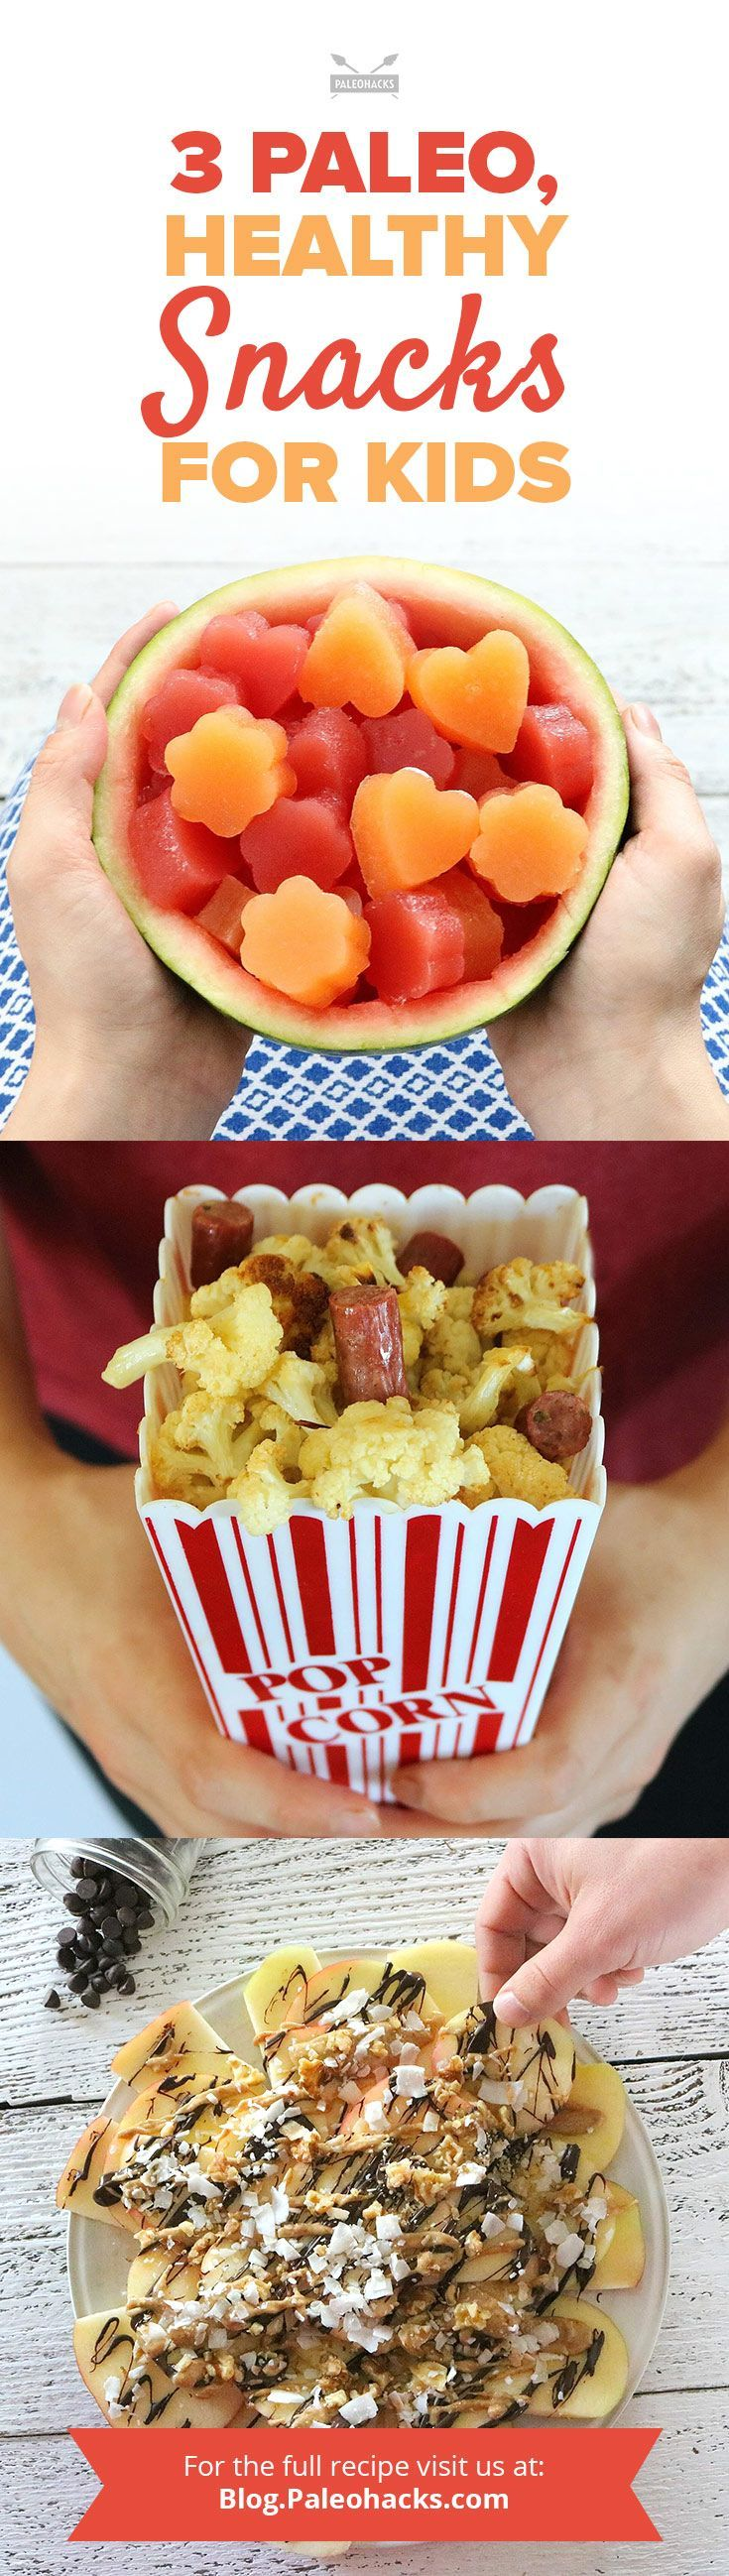 """Snack time is covered! From real fruit-flavored collagen gummies to """"popcorn"""" with a Paleo twist, these three creative, kid-friendly yet healthy snacks will please even the pickiest eater. Get the recipe here: http://paleo.co/healthykidssancks"""